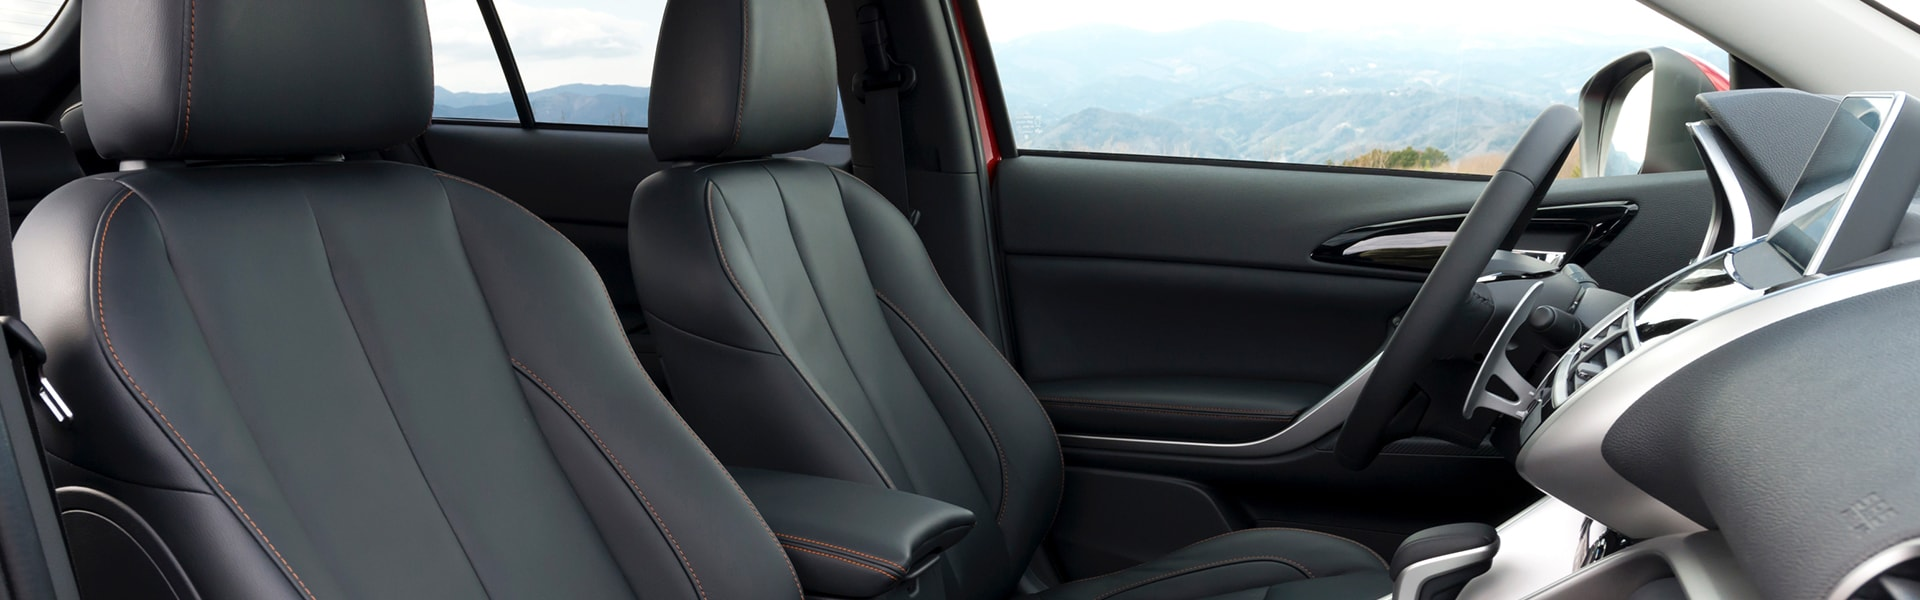 Leather-Seats-2018-Mitsubishi-Eclipse-Cross-Interior-d.jpg